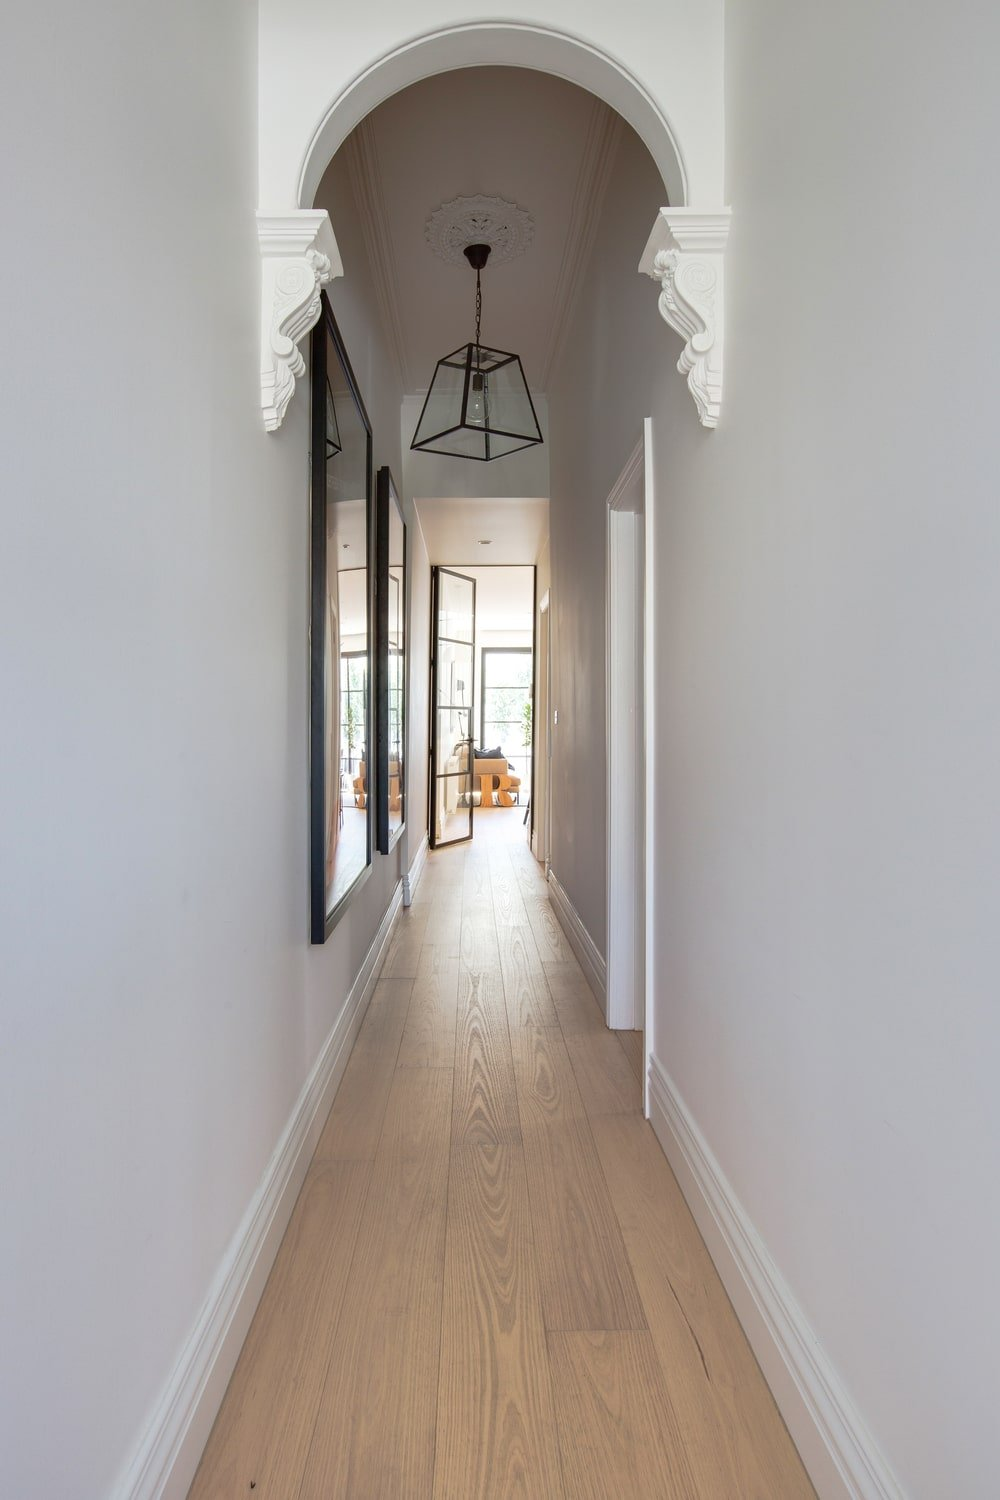 This is a simple hallway-like foyer with white walls, a white arch and a light hardwood flooring to be contrasted by the black lantern-like pendant light and the frames of the wall-mounted artworks.